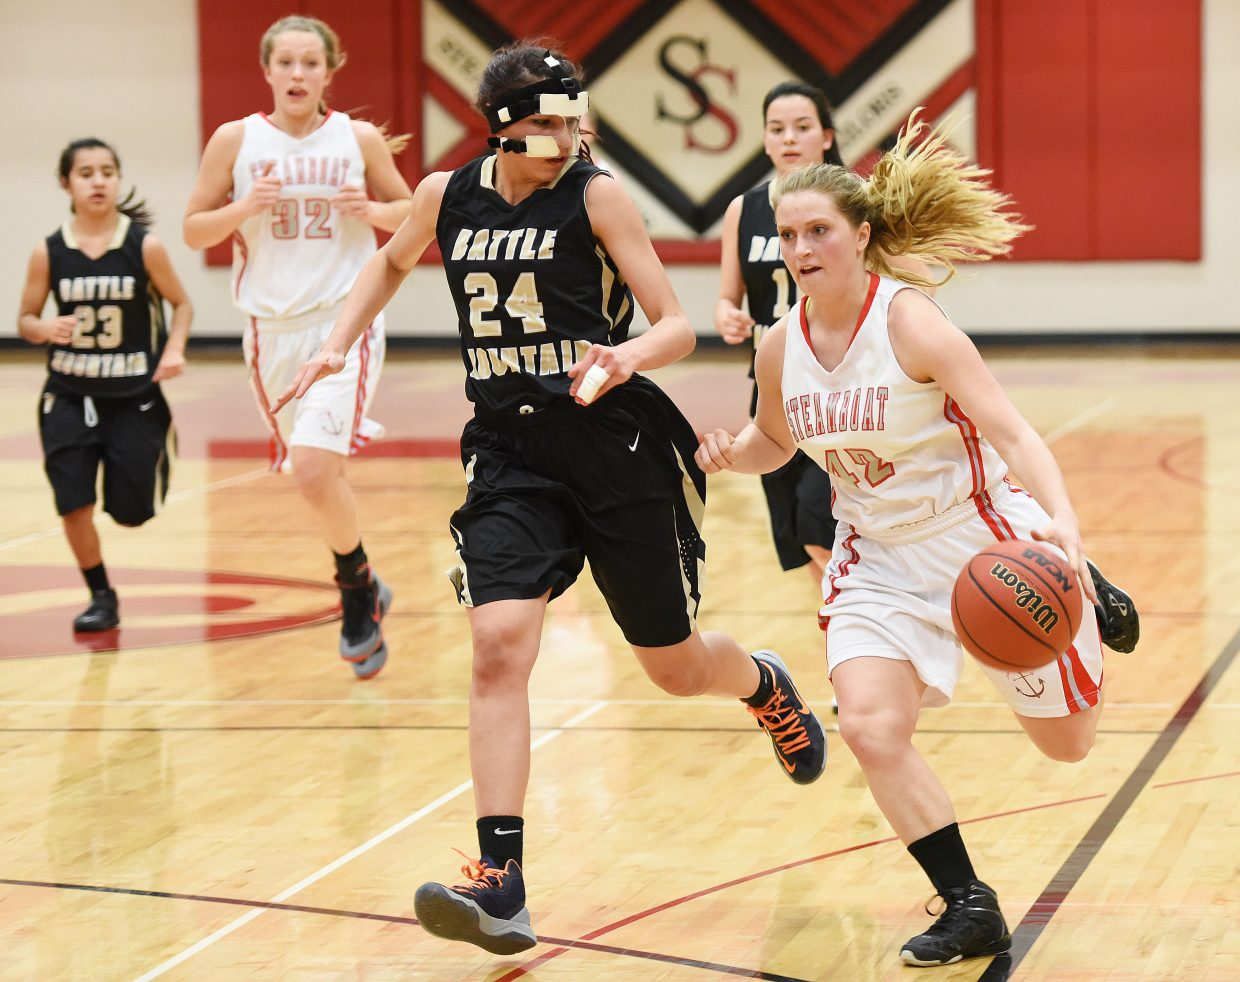 Steamboat's Alexandrea Bryant drives down the court Tuesday.